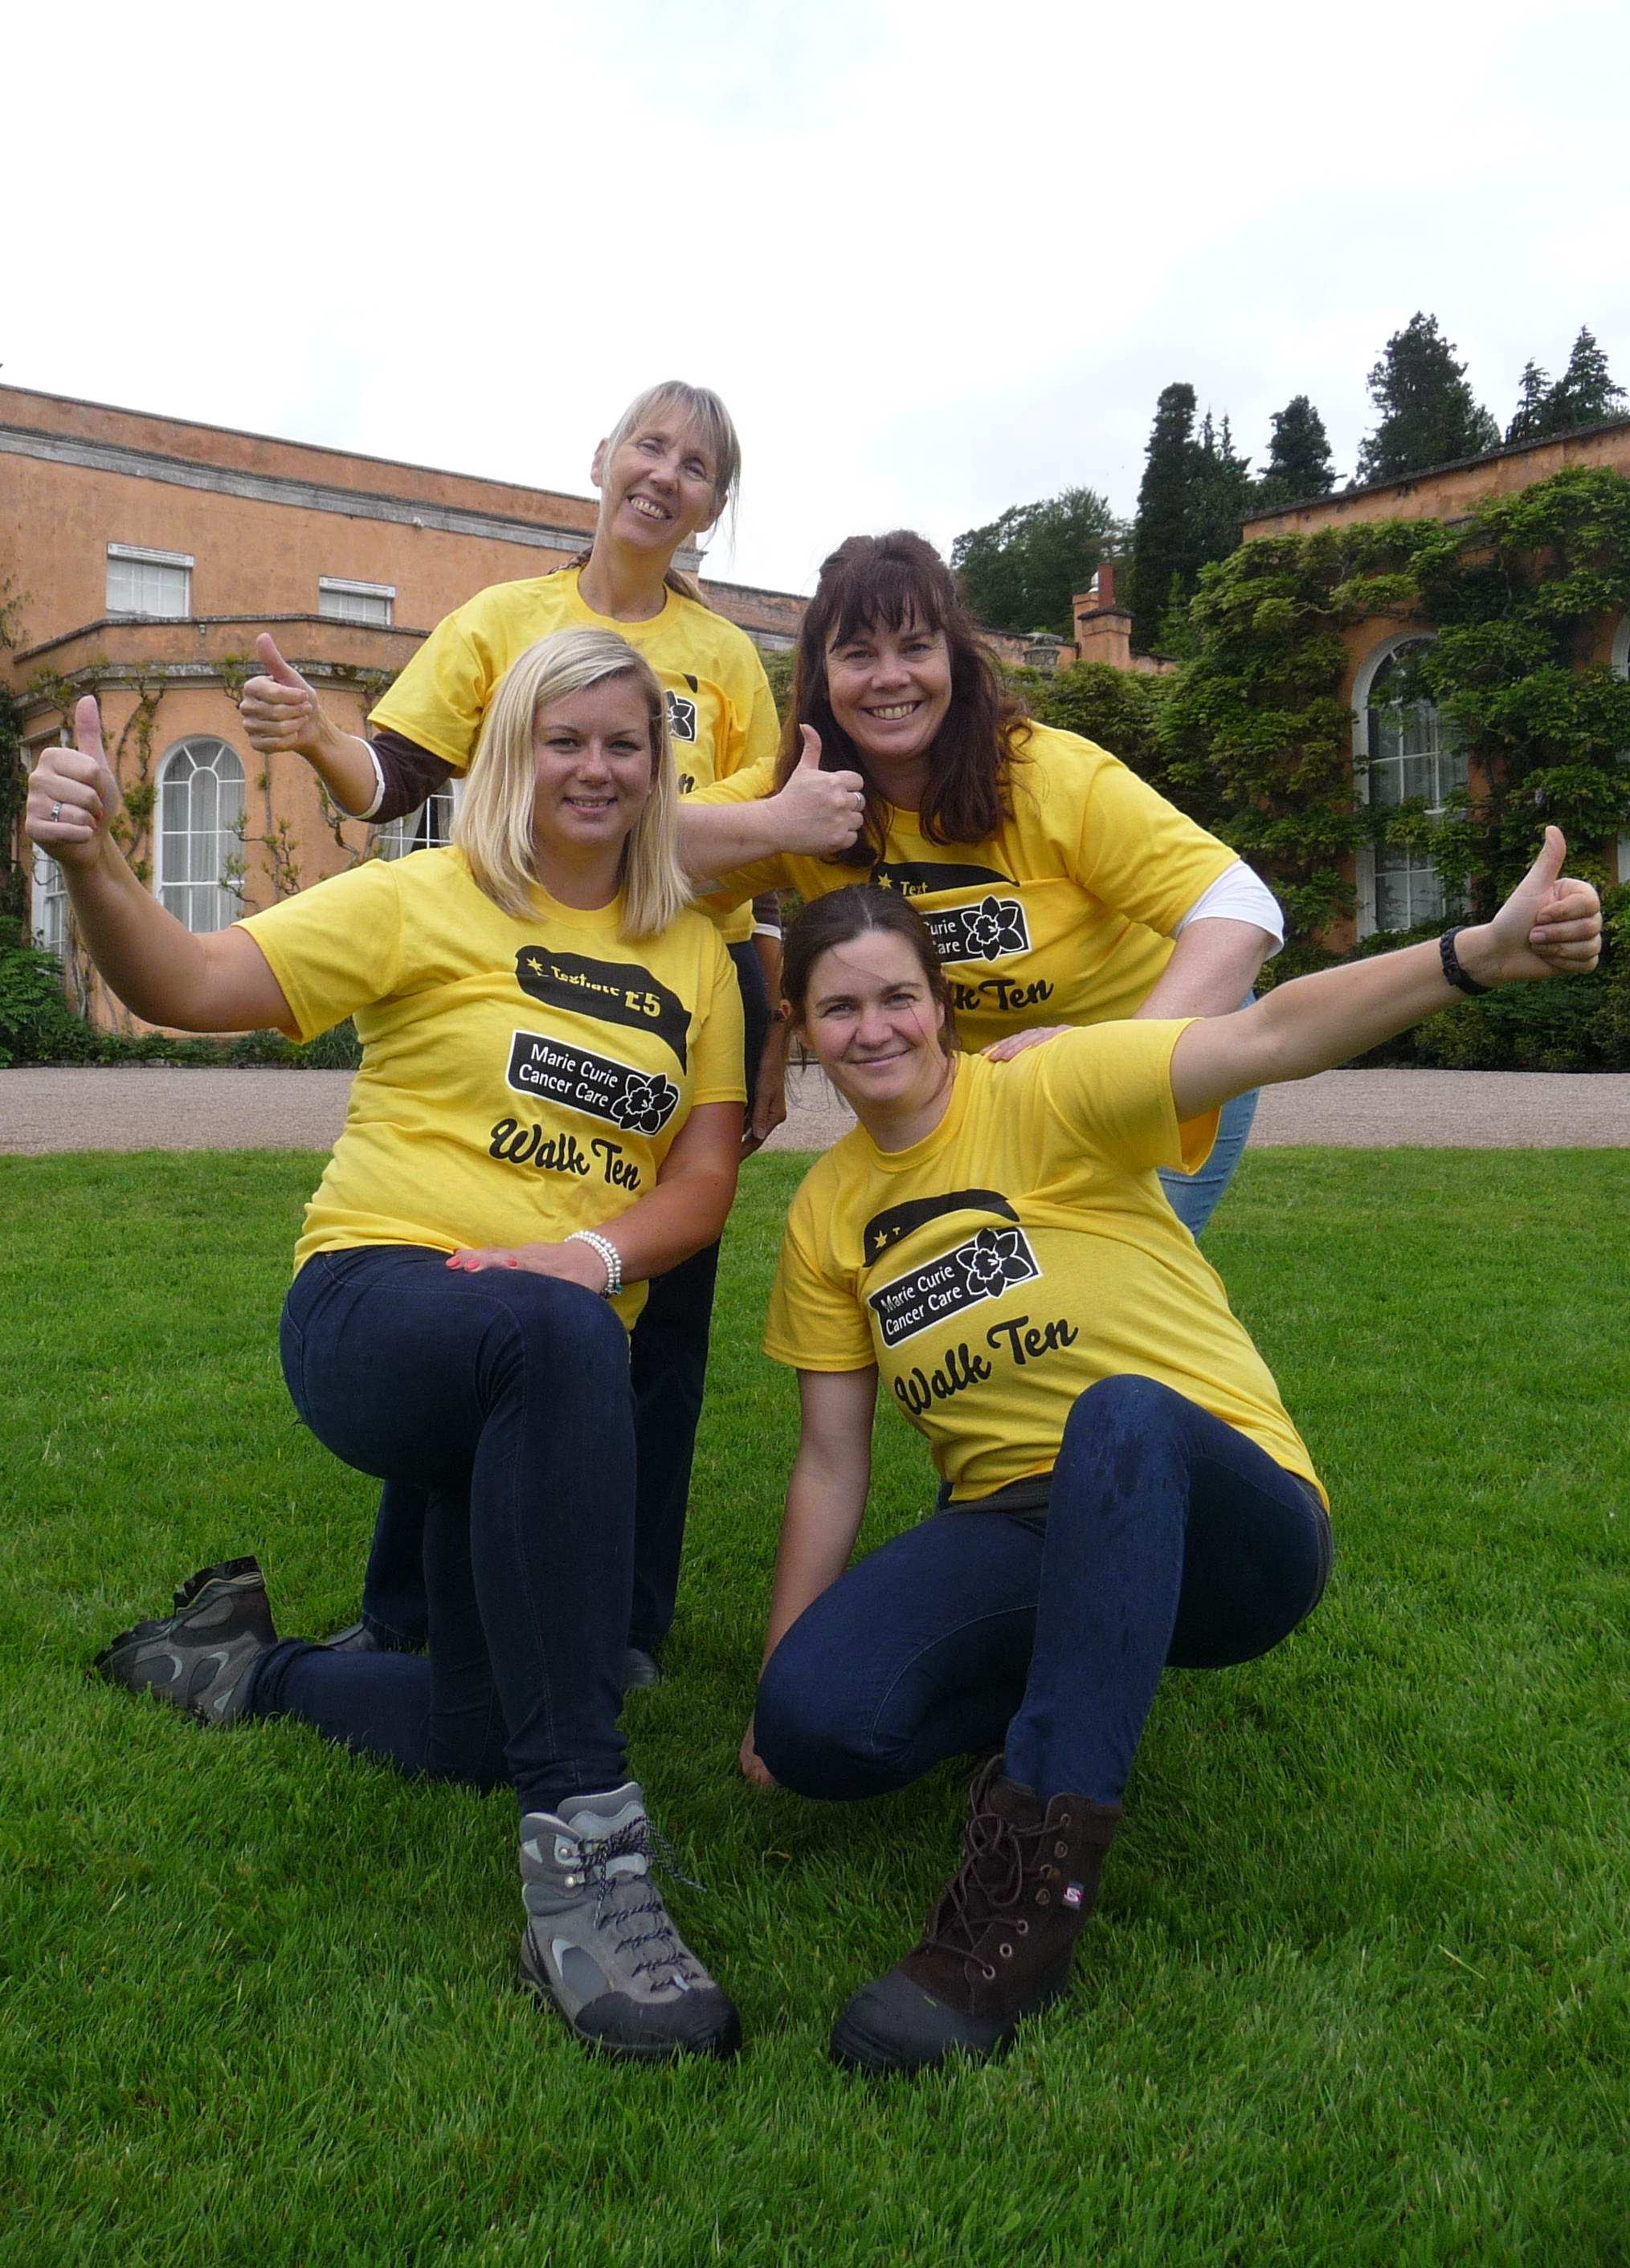 Fundraisers prepare for the Walk Ten event on the Badminton Estate